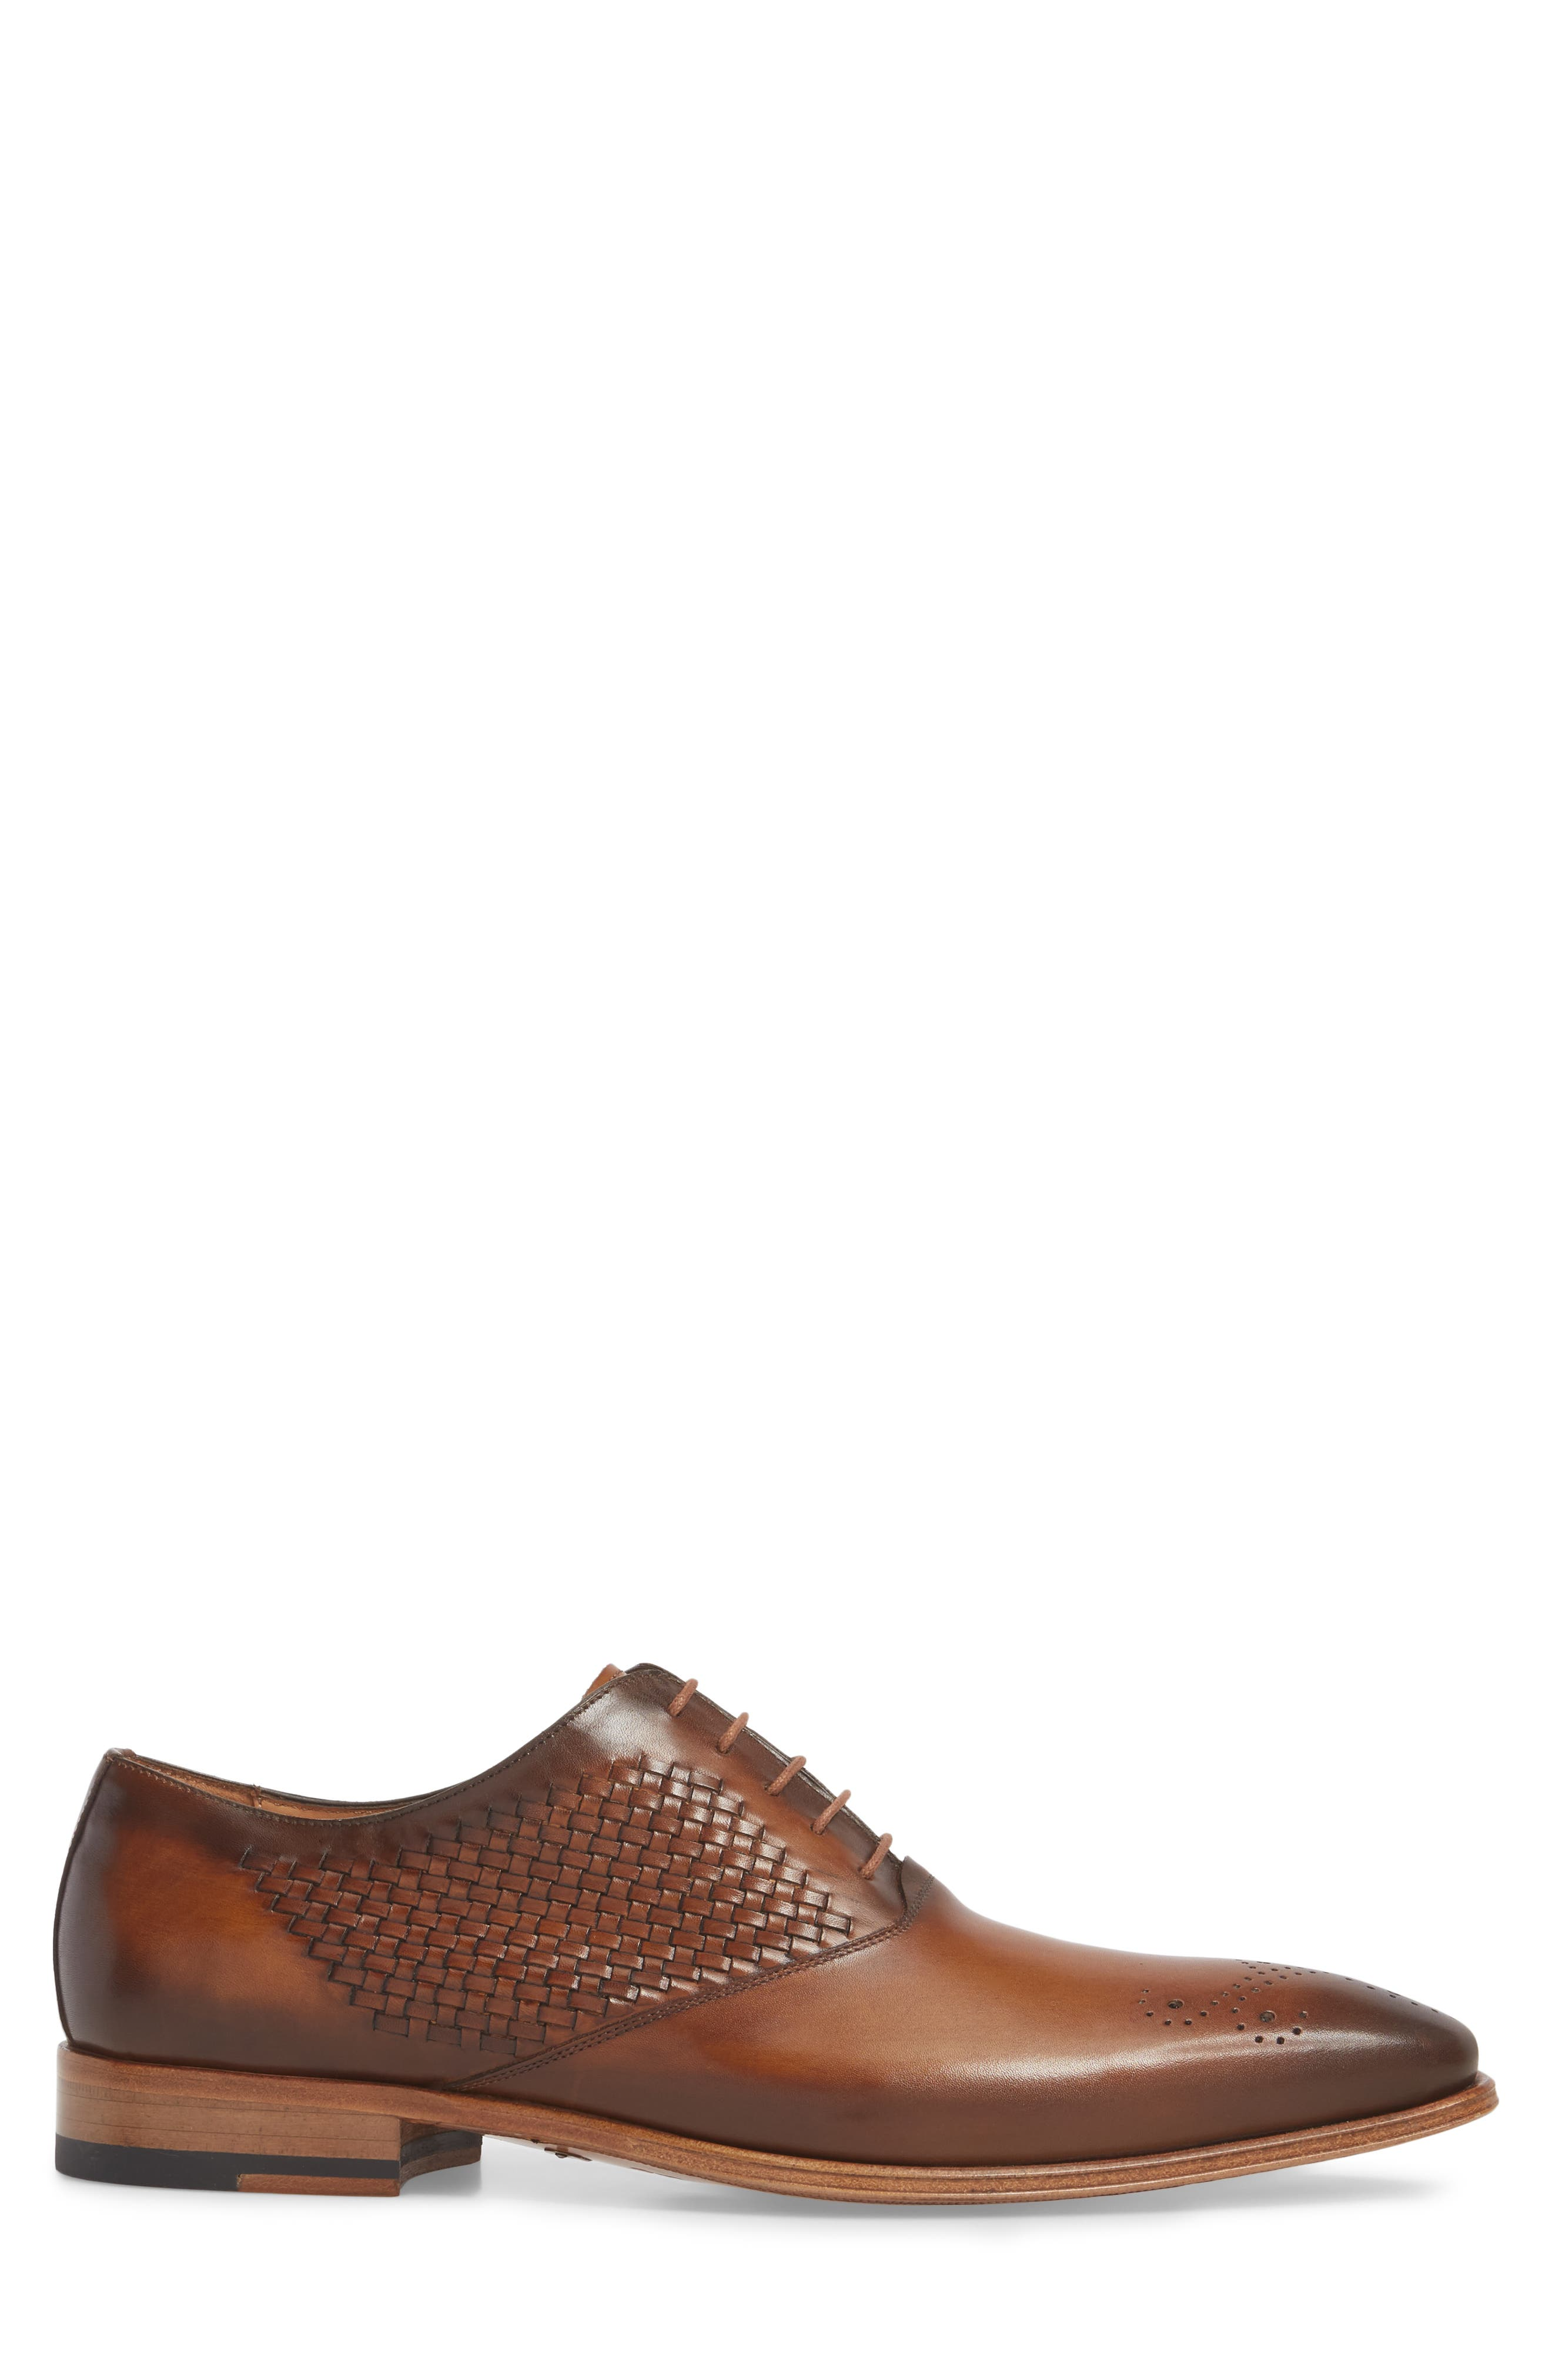 Juventa Woven Oxford,                             Alternate thumbnail 3, color,                             HONEY LEATHER